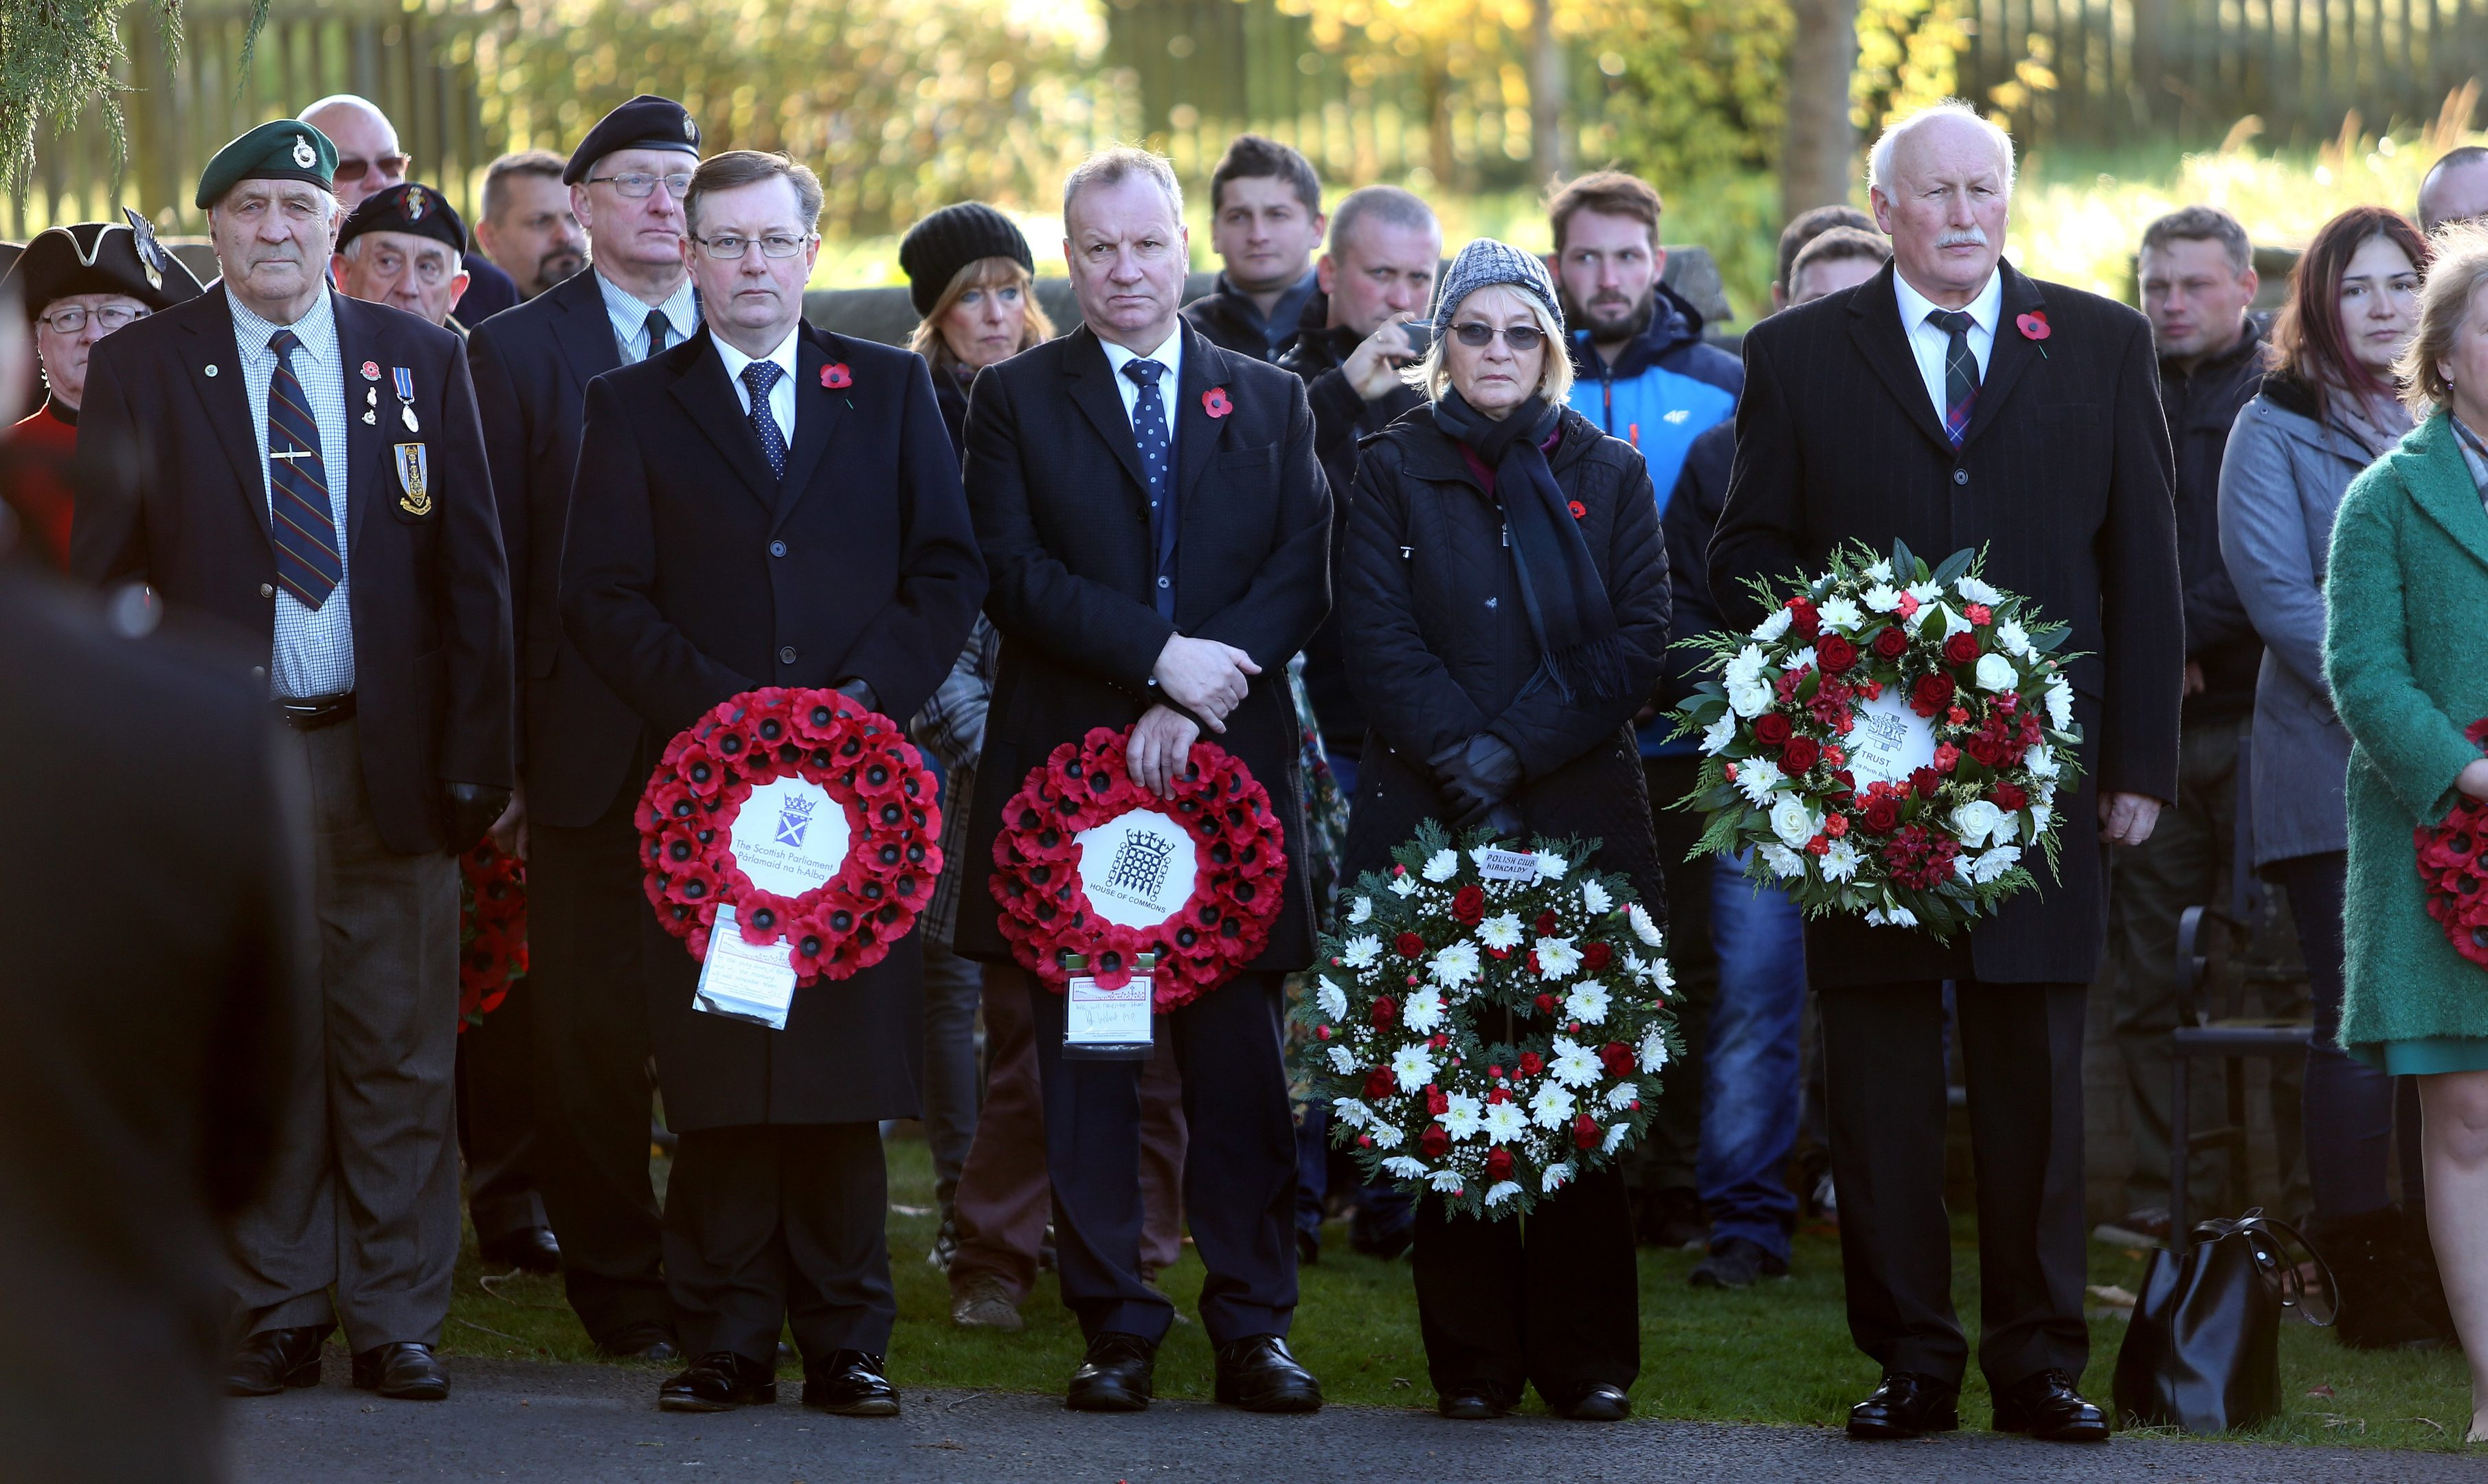 The annual commemoration of Polish war dead from WW2 took place at Wellshill cemetery,